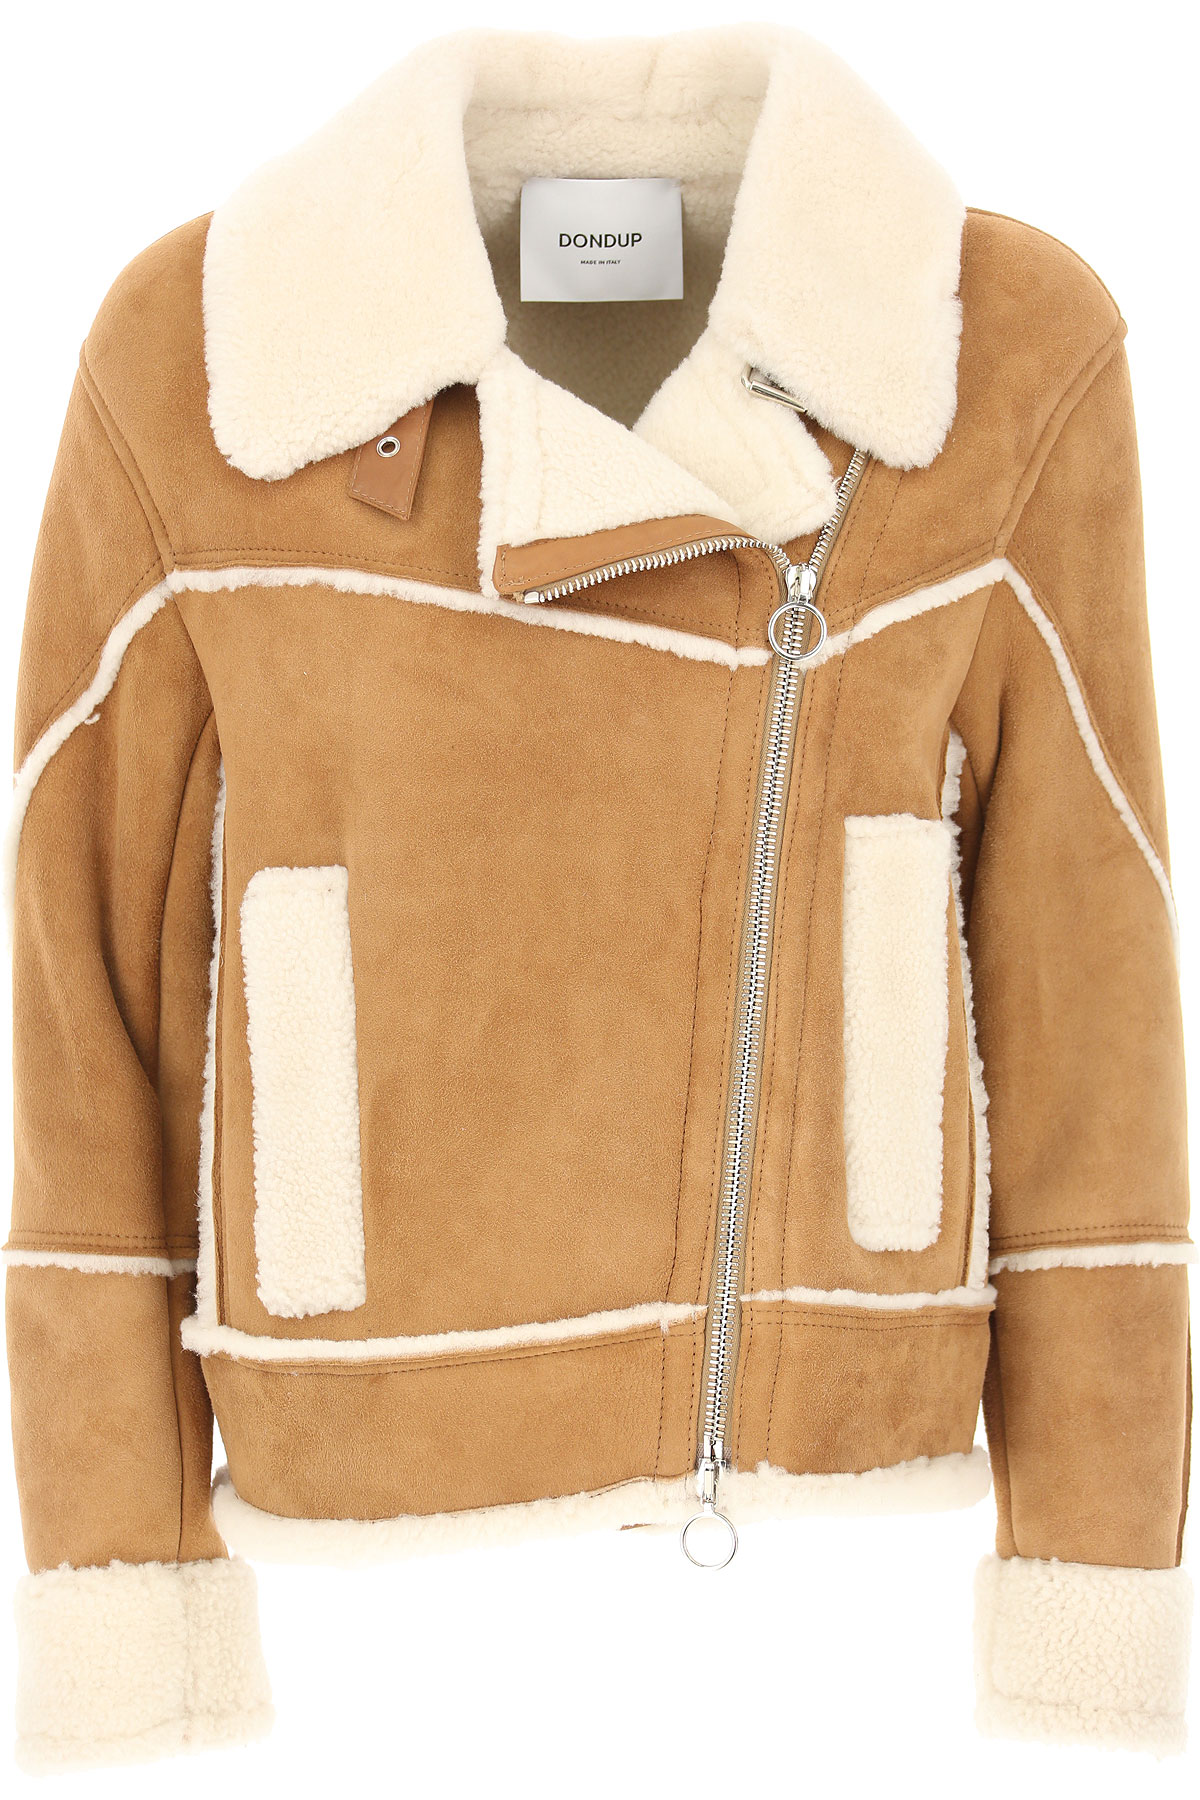 Image of Dondup Leather Jacket for Women, Camel, Leather, 2017, 10 2 4 6 8